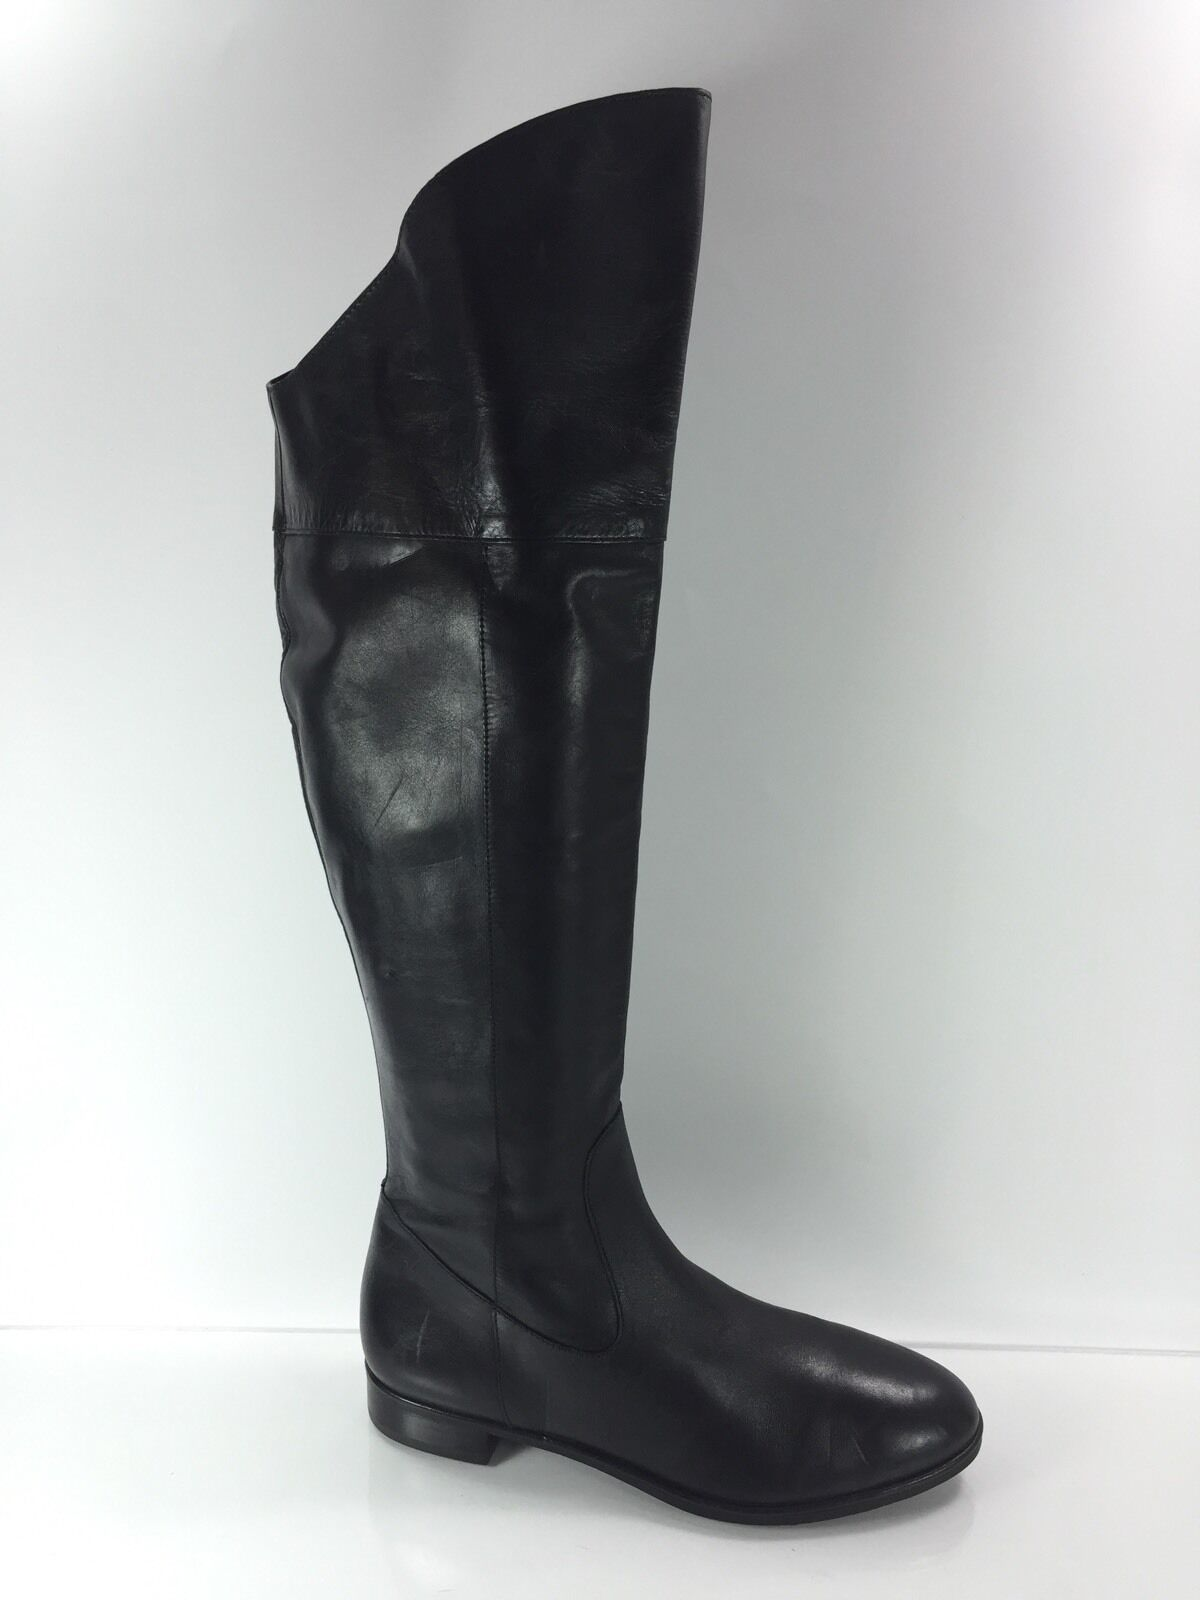 Via Spiga Womens Black Over The Knee Leather Boots 9.5 M